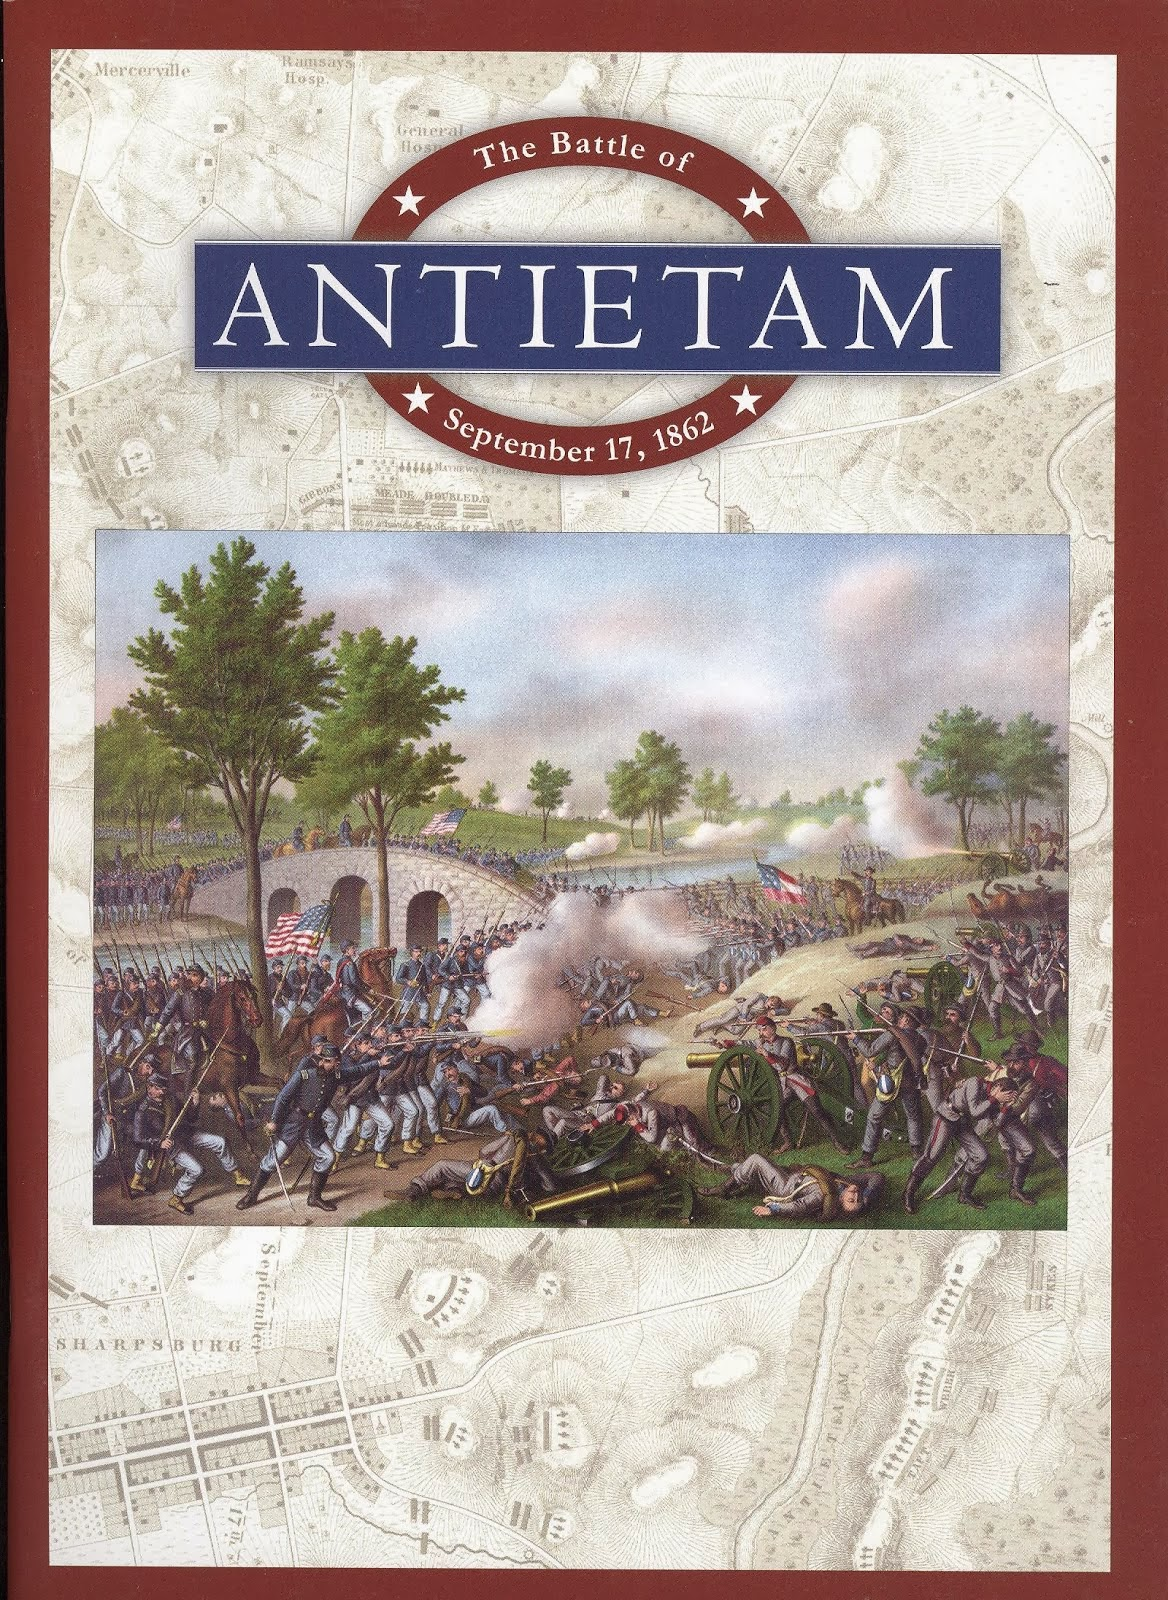 The Battle of Antietam: September 17, 1862